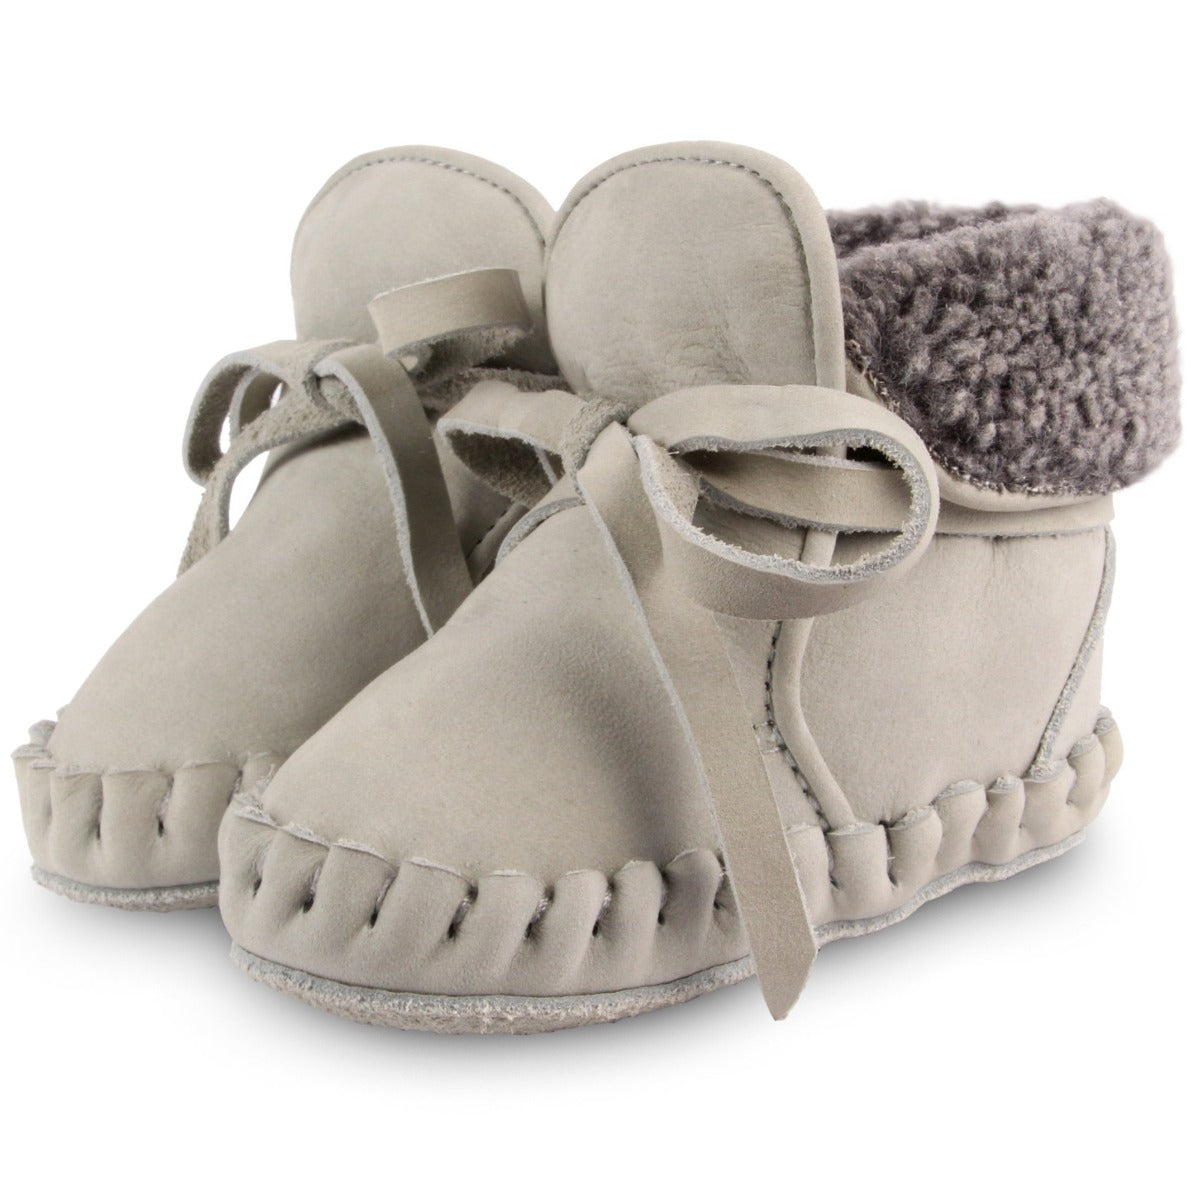 US stockist of Donsje's gender neutral Jaya baby shoe in light grey nubuck.  Handmade, moccassin style shoe, lined and with laces.